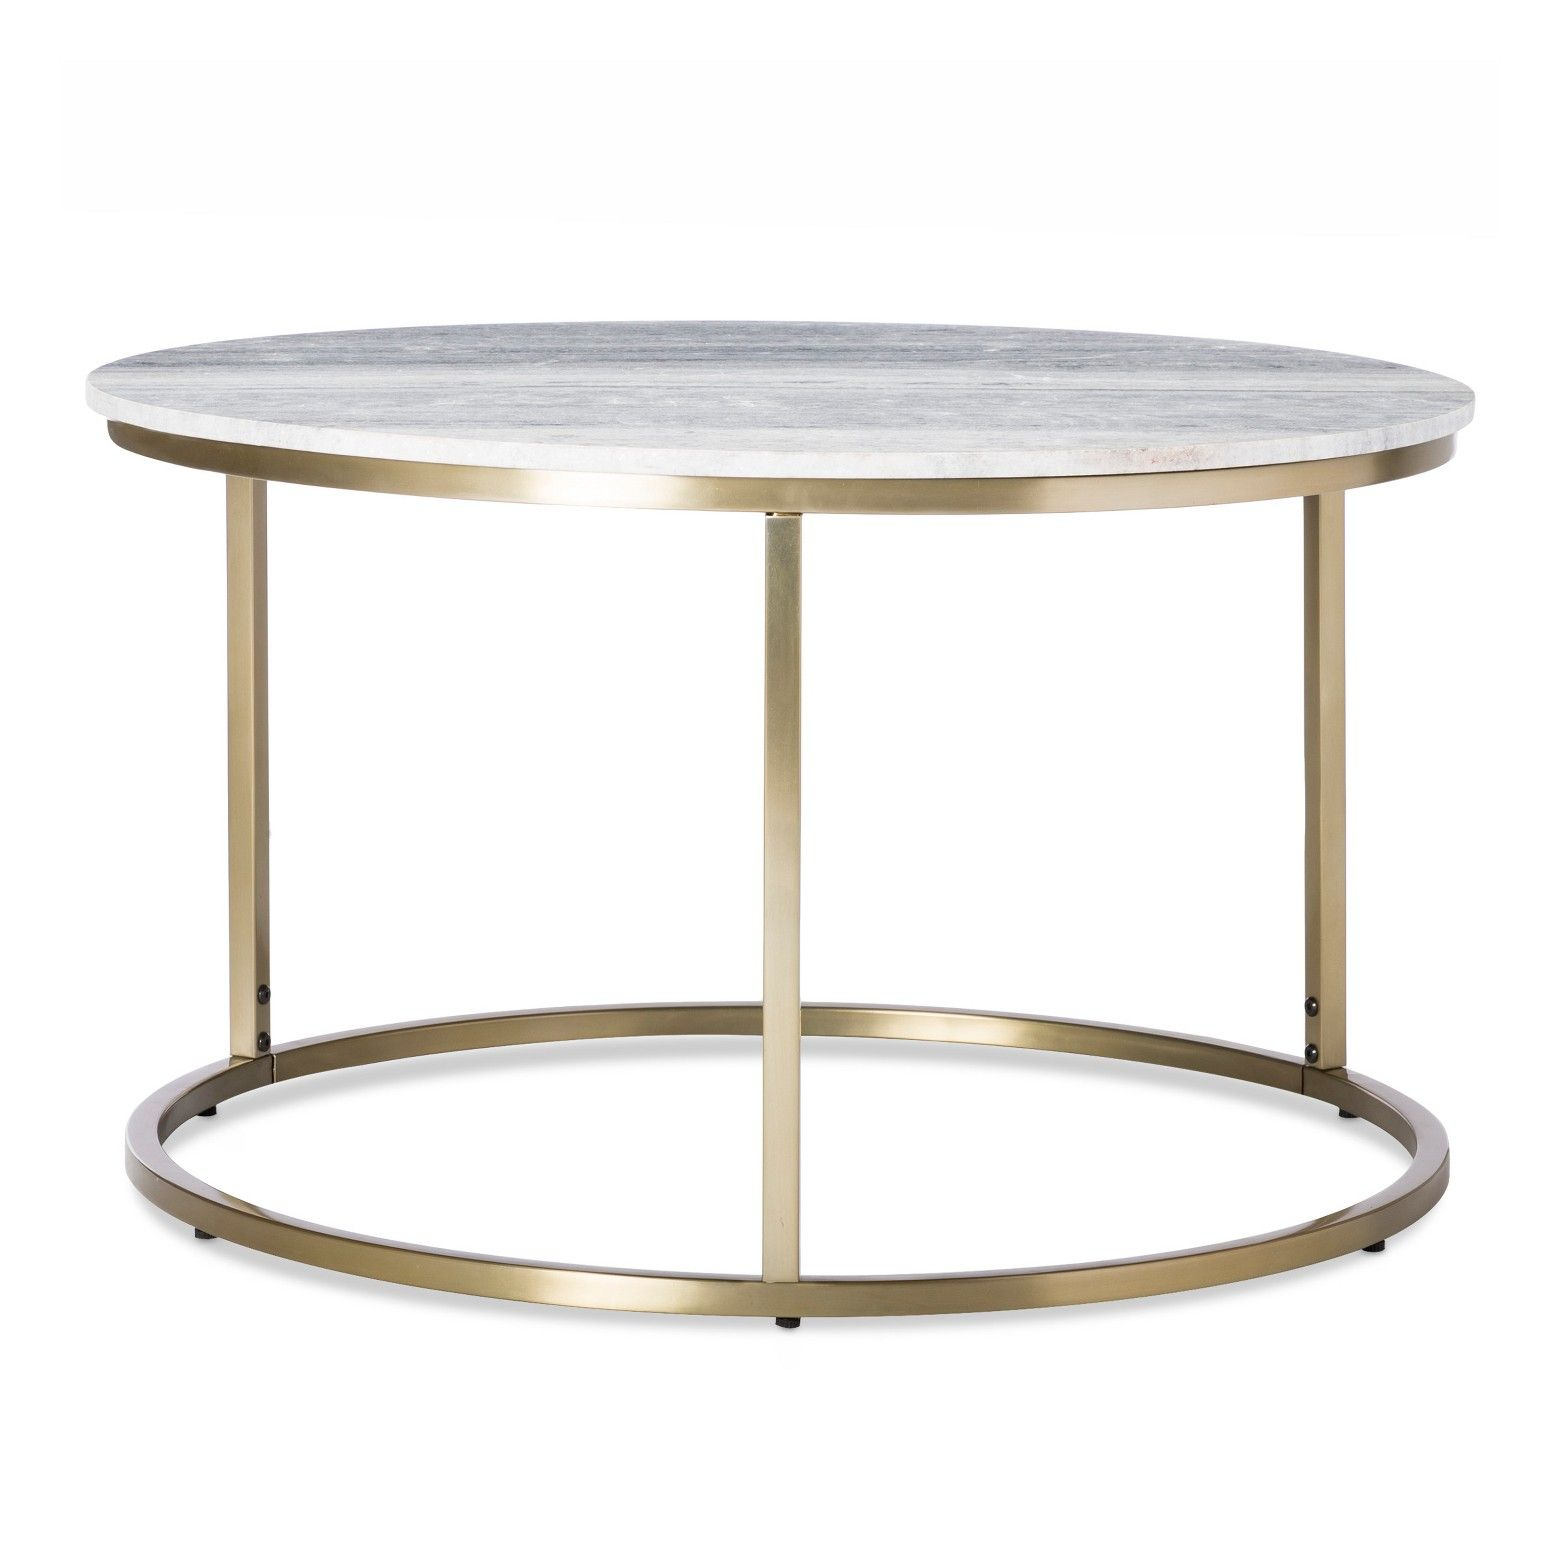 coffee tables target find great selection wood accent table metal storage more free shipping orders clear plexiglass room essentials furniture roland drum throne umbrella base